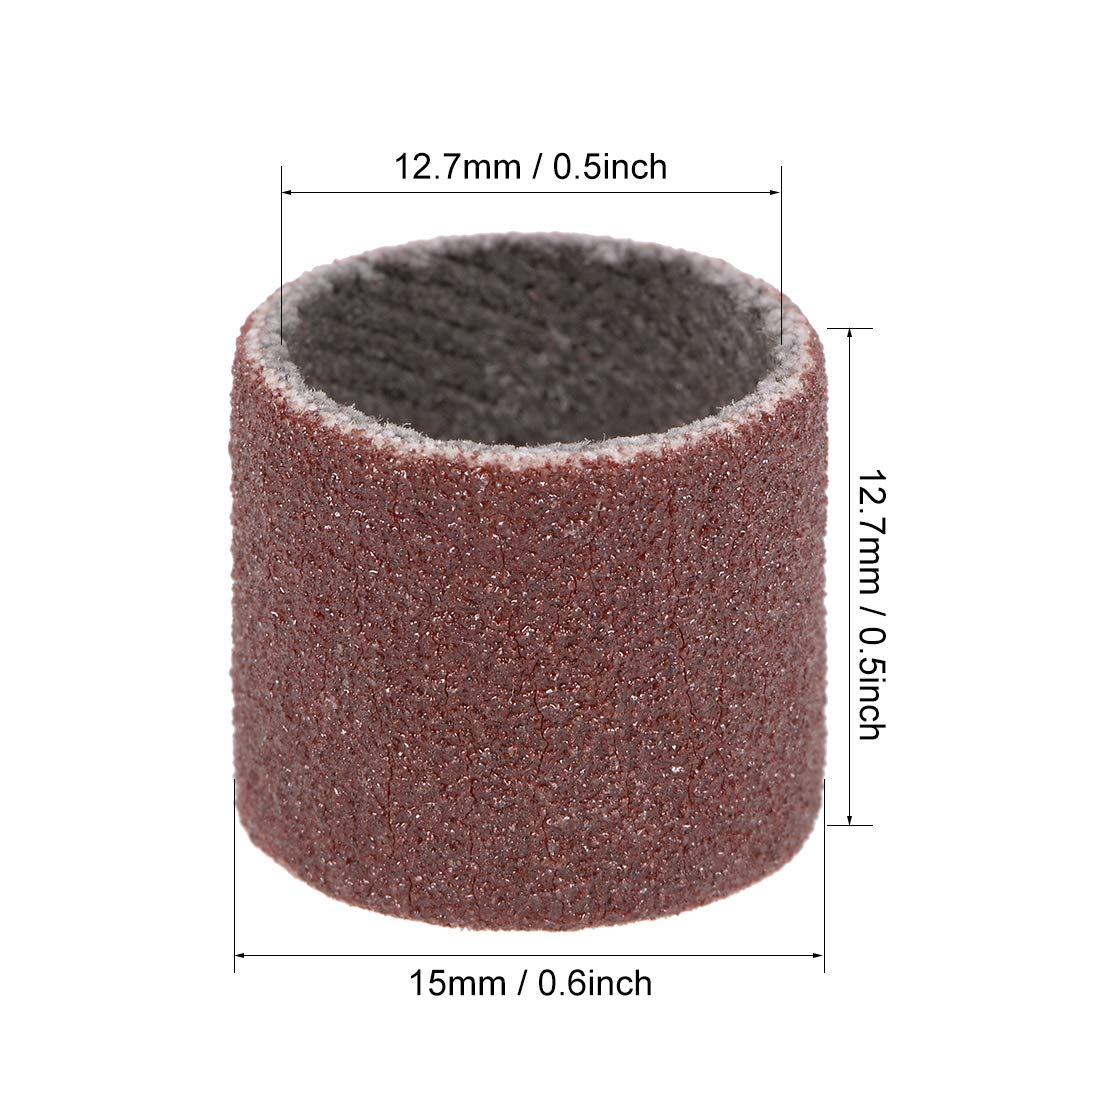 uxcell 1//2 inch x 1//2 inch Sanding Sleeves 80 Grits Sandpapers Band Drums 5 Pcs